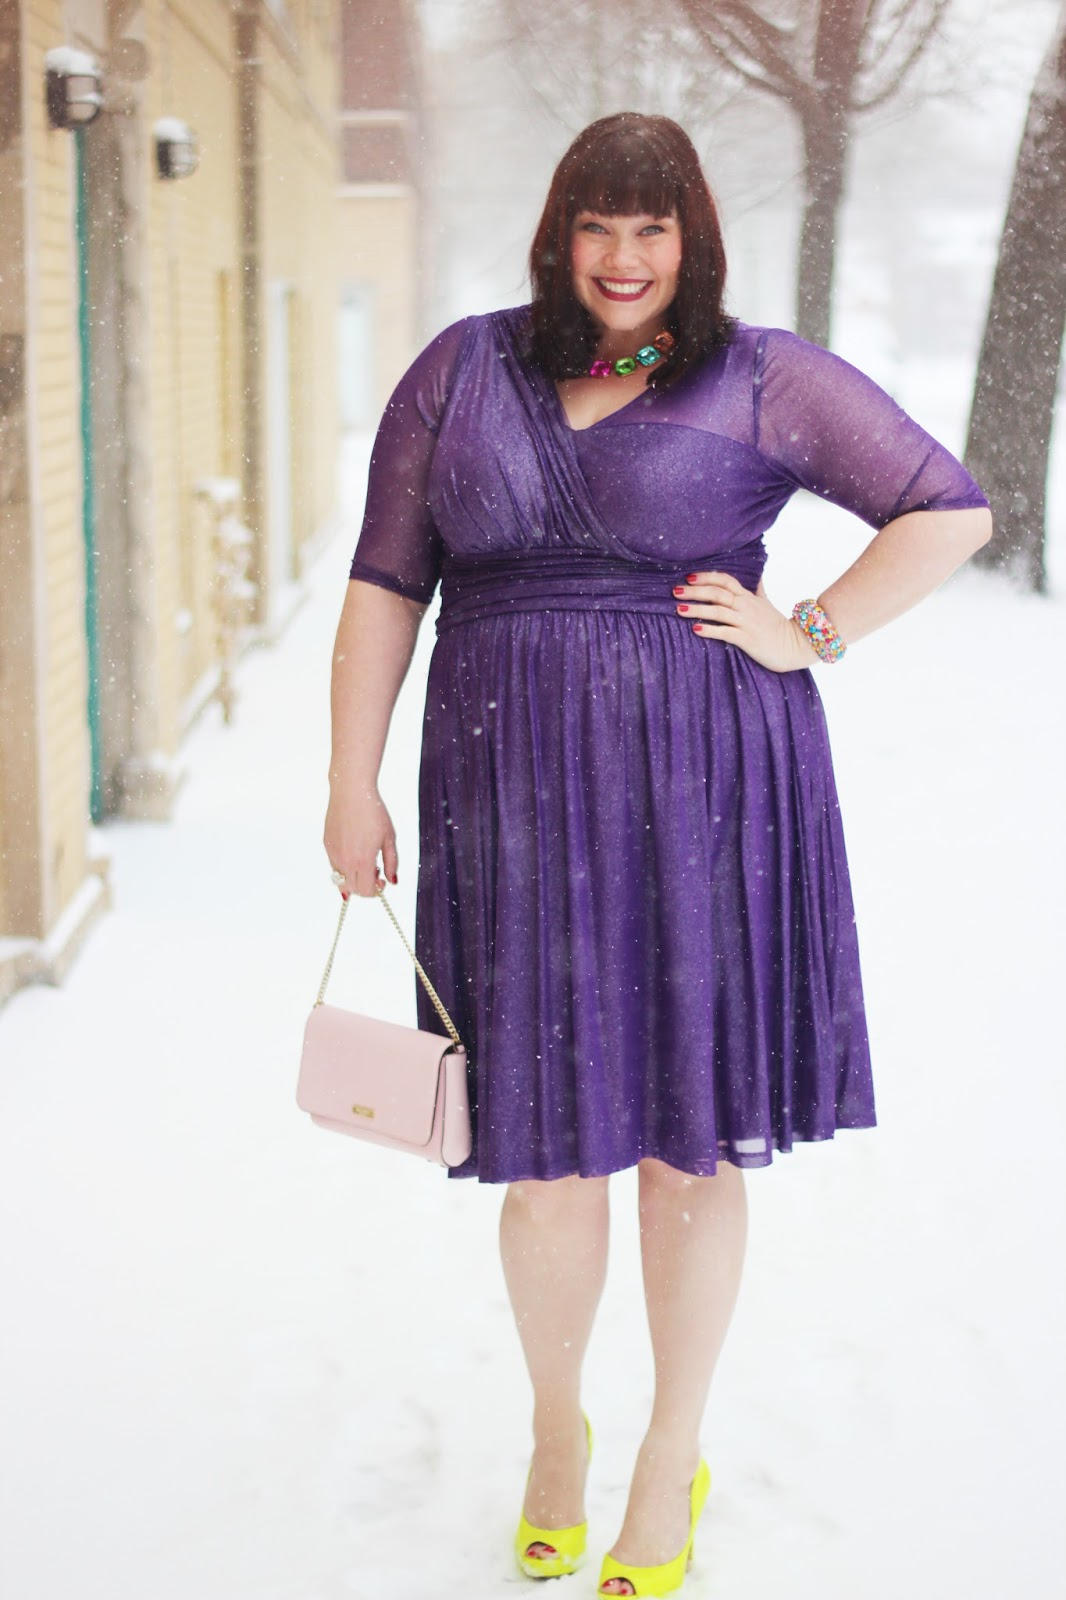 Plus Size Blogger Amber in Kiyonna Cocktail Dress in the Snow